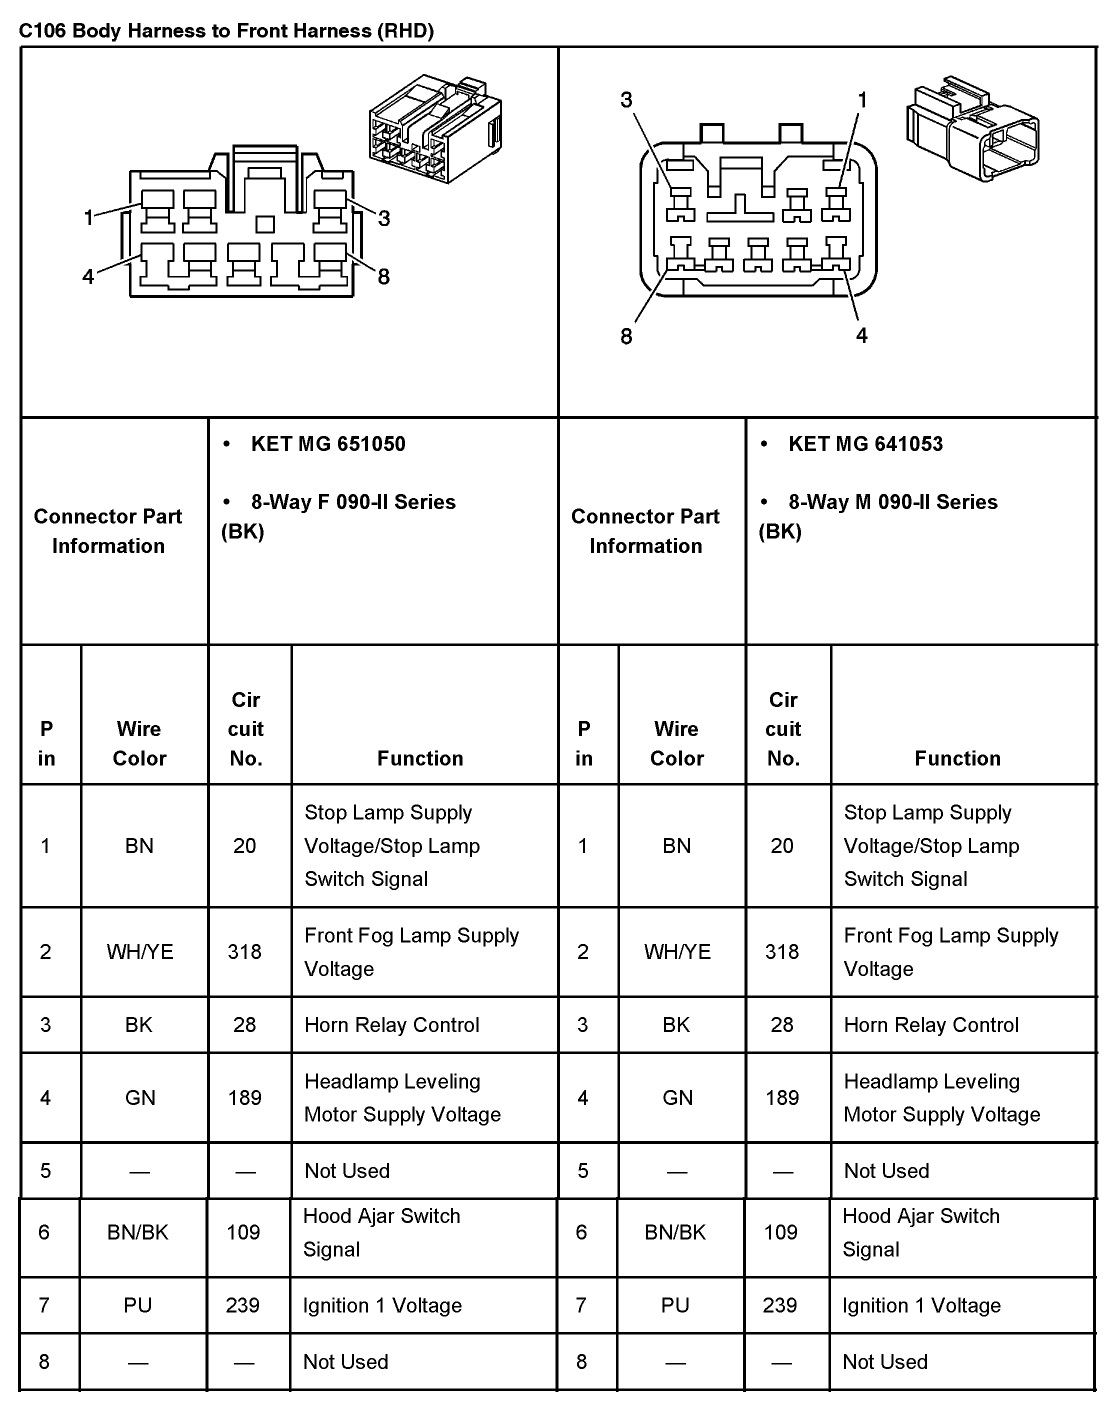 7331d1383704576 2005 aveo master connector list diagrams conn3 jpg 2008 chevy aveo fuse box diagram chevy aveo door lock diagram 2013 chevy cruze fuse box diagram at creativeand.co